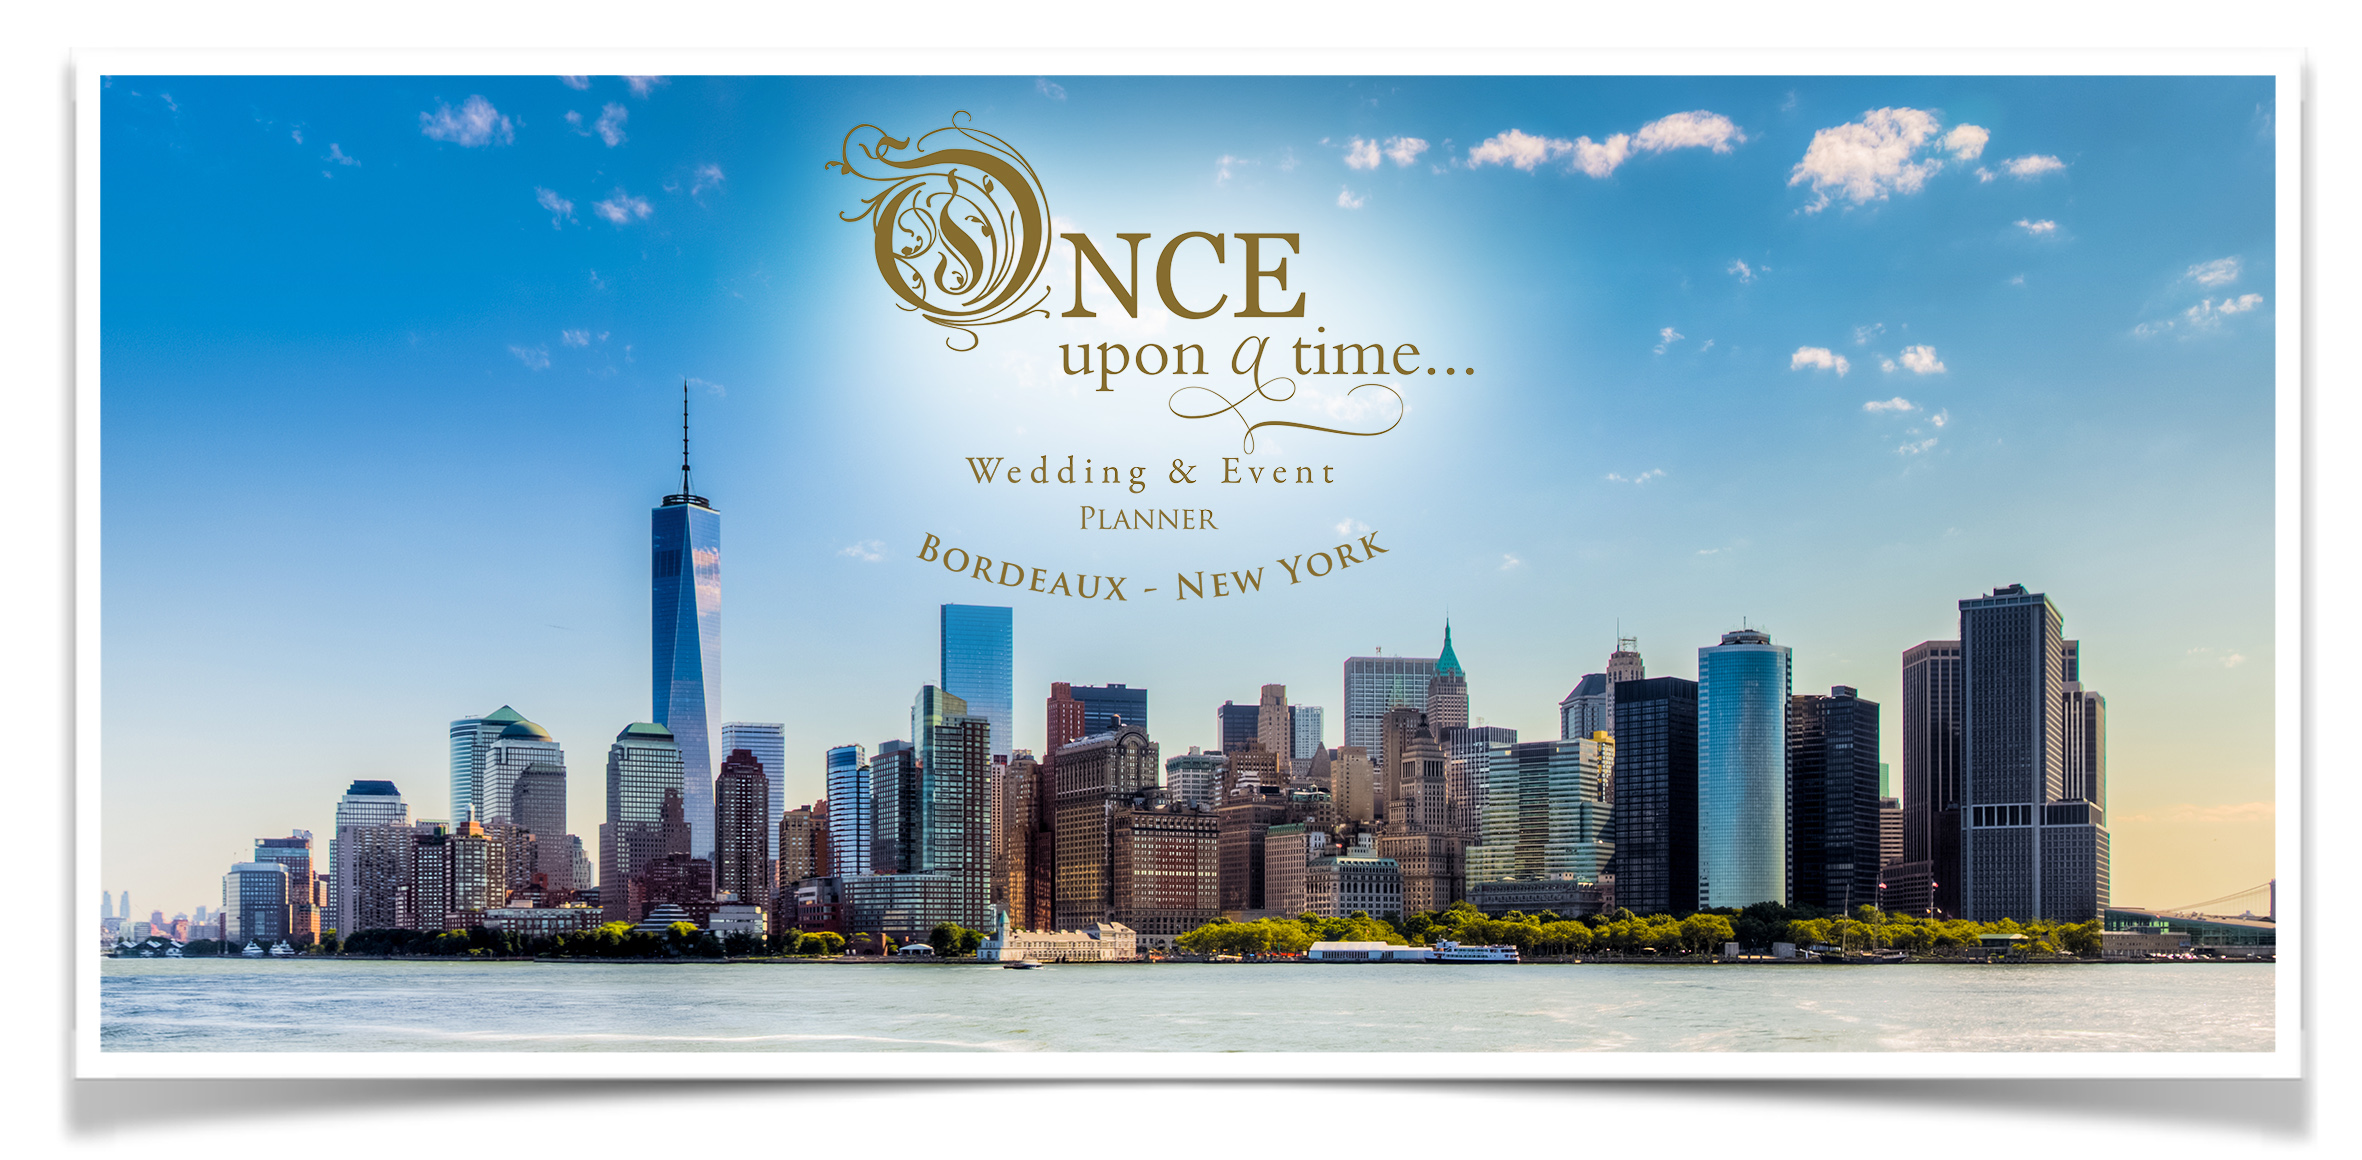 Once dating new york